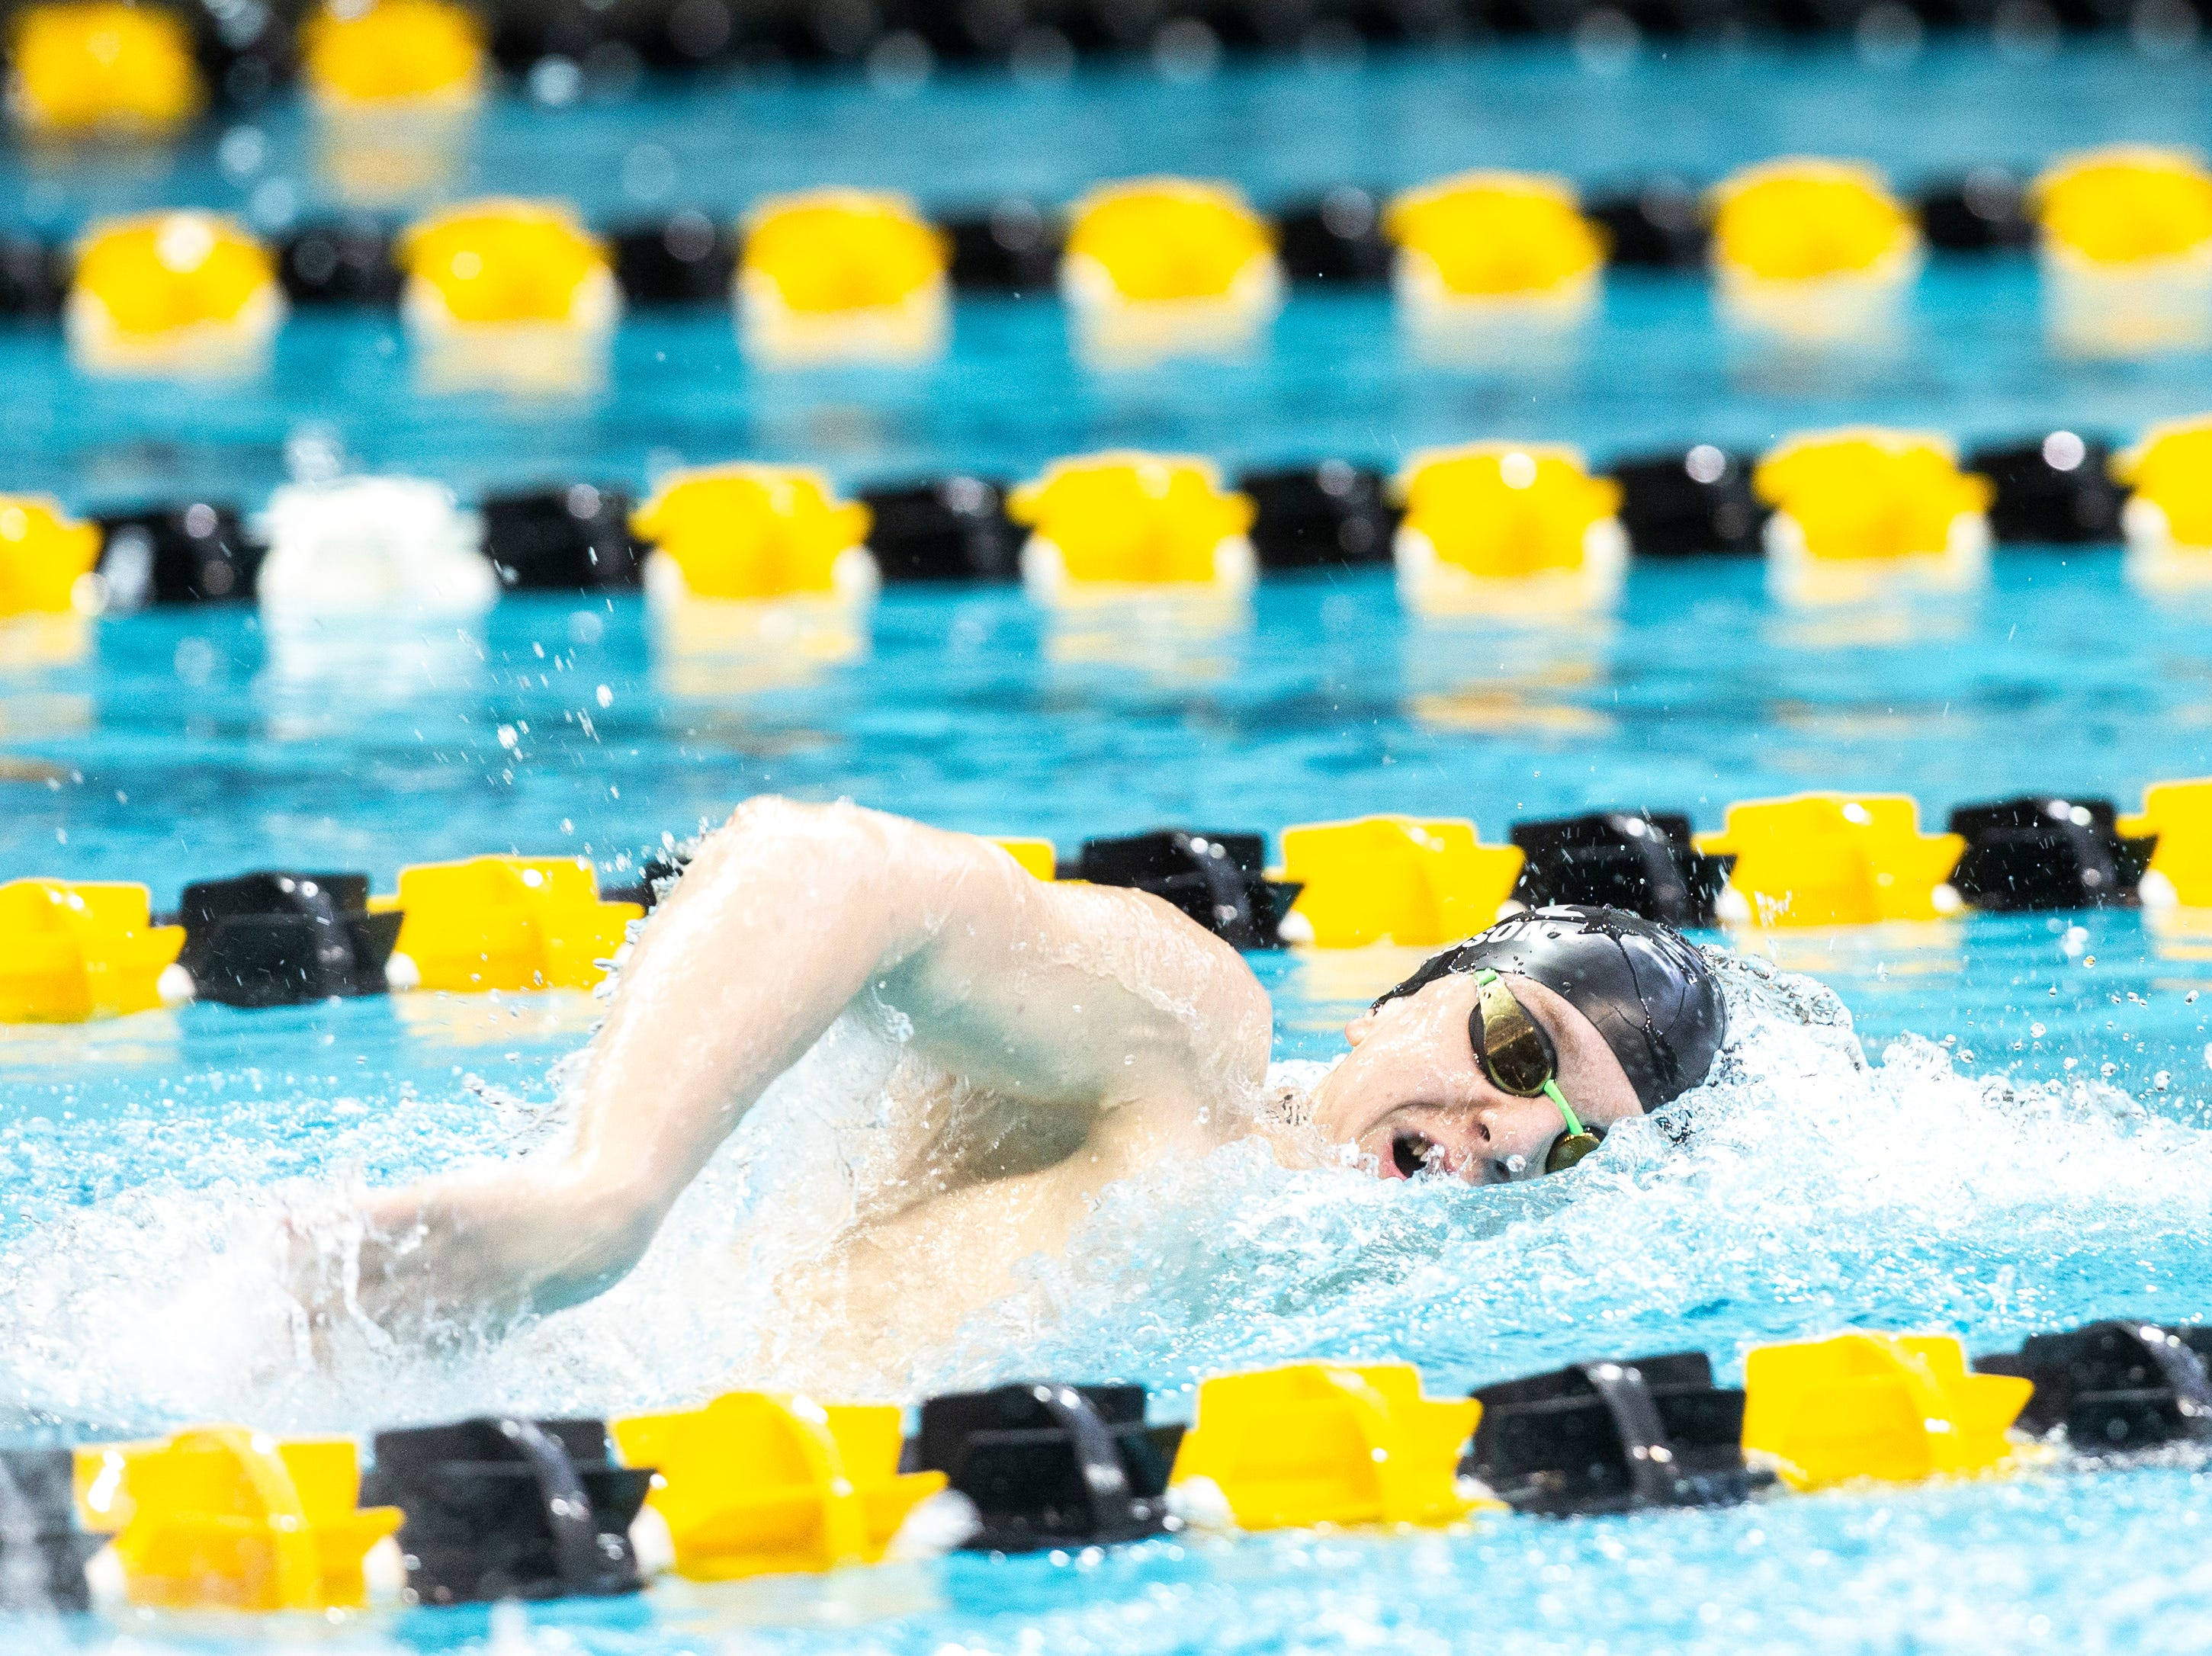 Ankeny sophomore Trent Frandson competes in the third heat of the 500 yard freestyle during the Iowa boys' state swimming regional championship meet on Saturday, Feb. 9, 2019 at Campus Recreation and Wellness Center on the University of Iowa campus in Iowa City, Iowa. Frandson set a state record with his first place finish, with a time of 4:23.46.